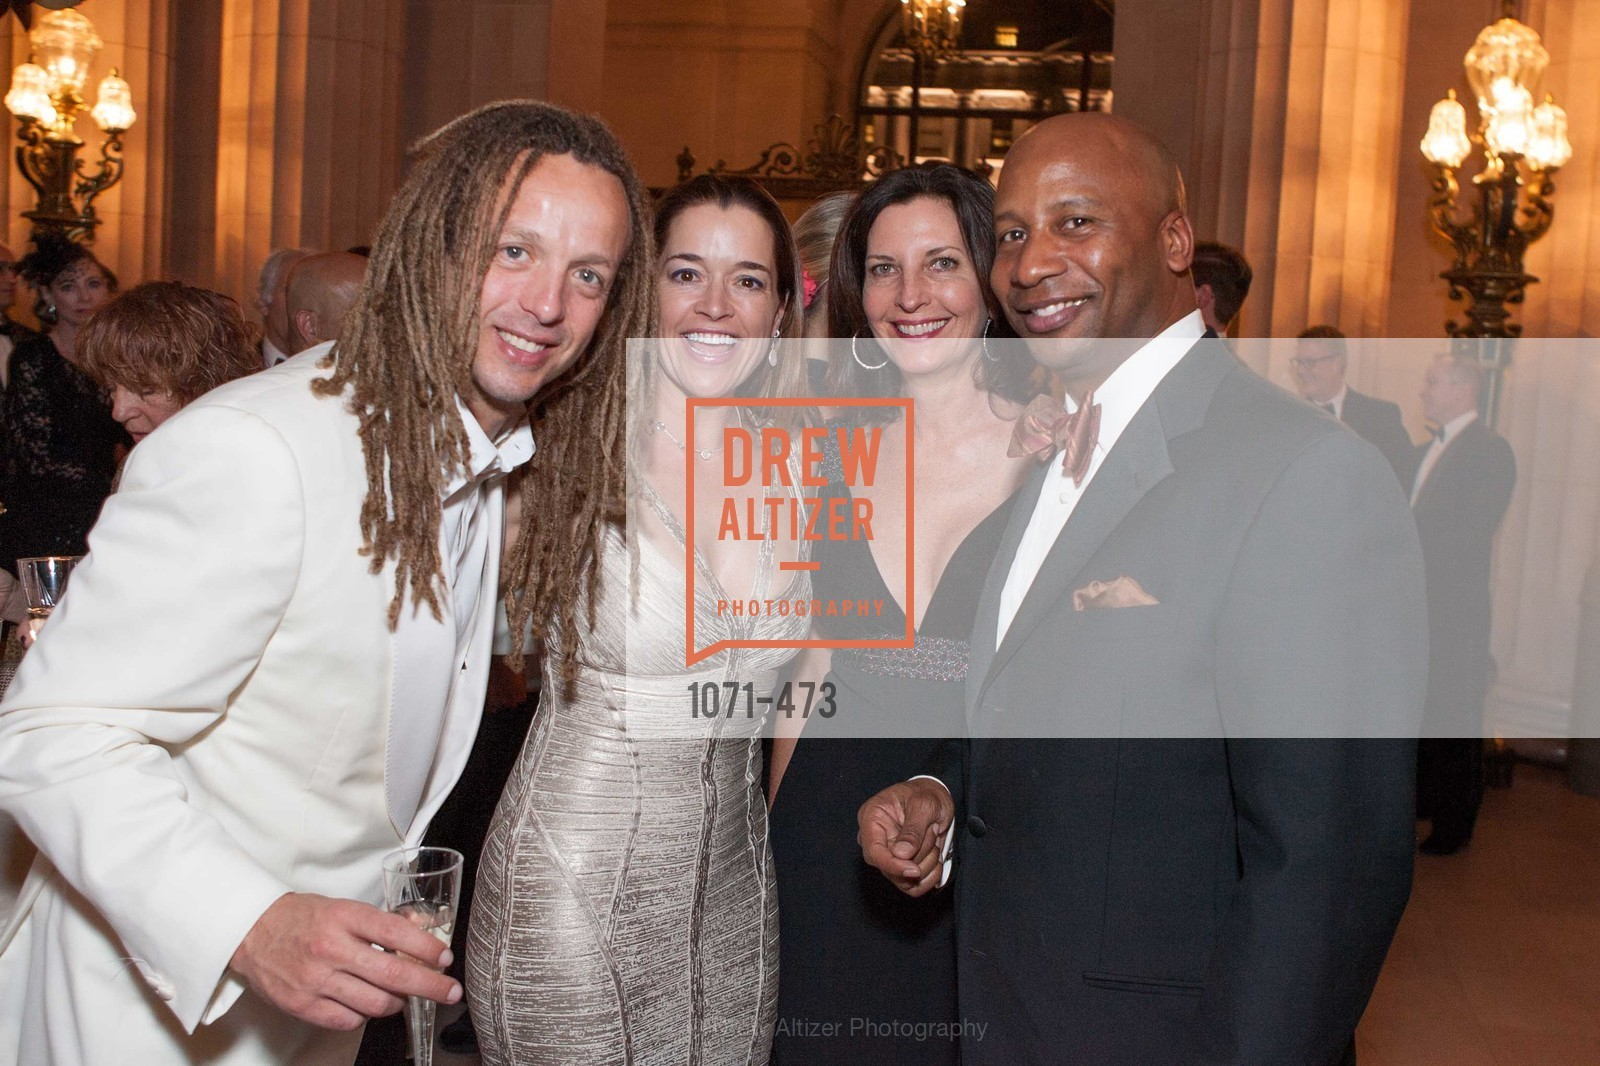 Keith Hunter, Kerah Cottrell, Karen Burgman, Roger Wood, ENCORE! at San Francisco BALLET'S 2014 Season Opening Night Gala, US. US, January 22nd, 2014,Drew Altizer, Drew Altizer Photography, full-service event agency, private events, San Francisco photographer, photographer California